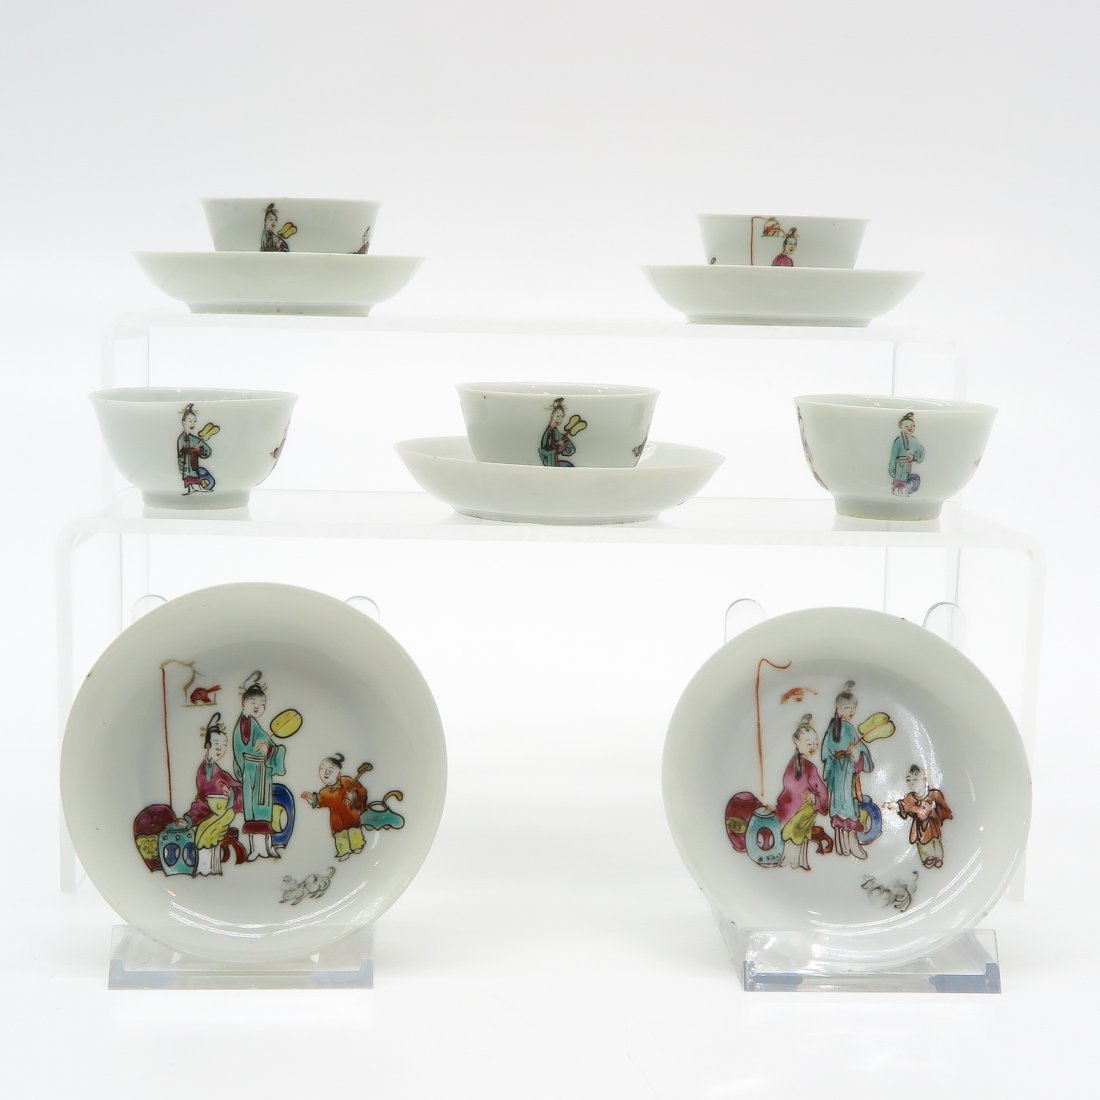 Lot of 5 China Porcelain Cups and Saucers